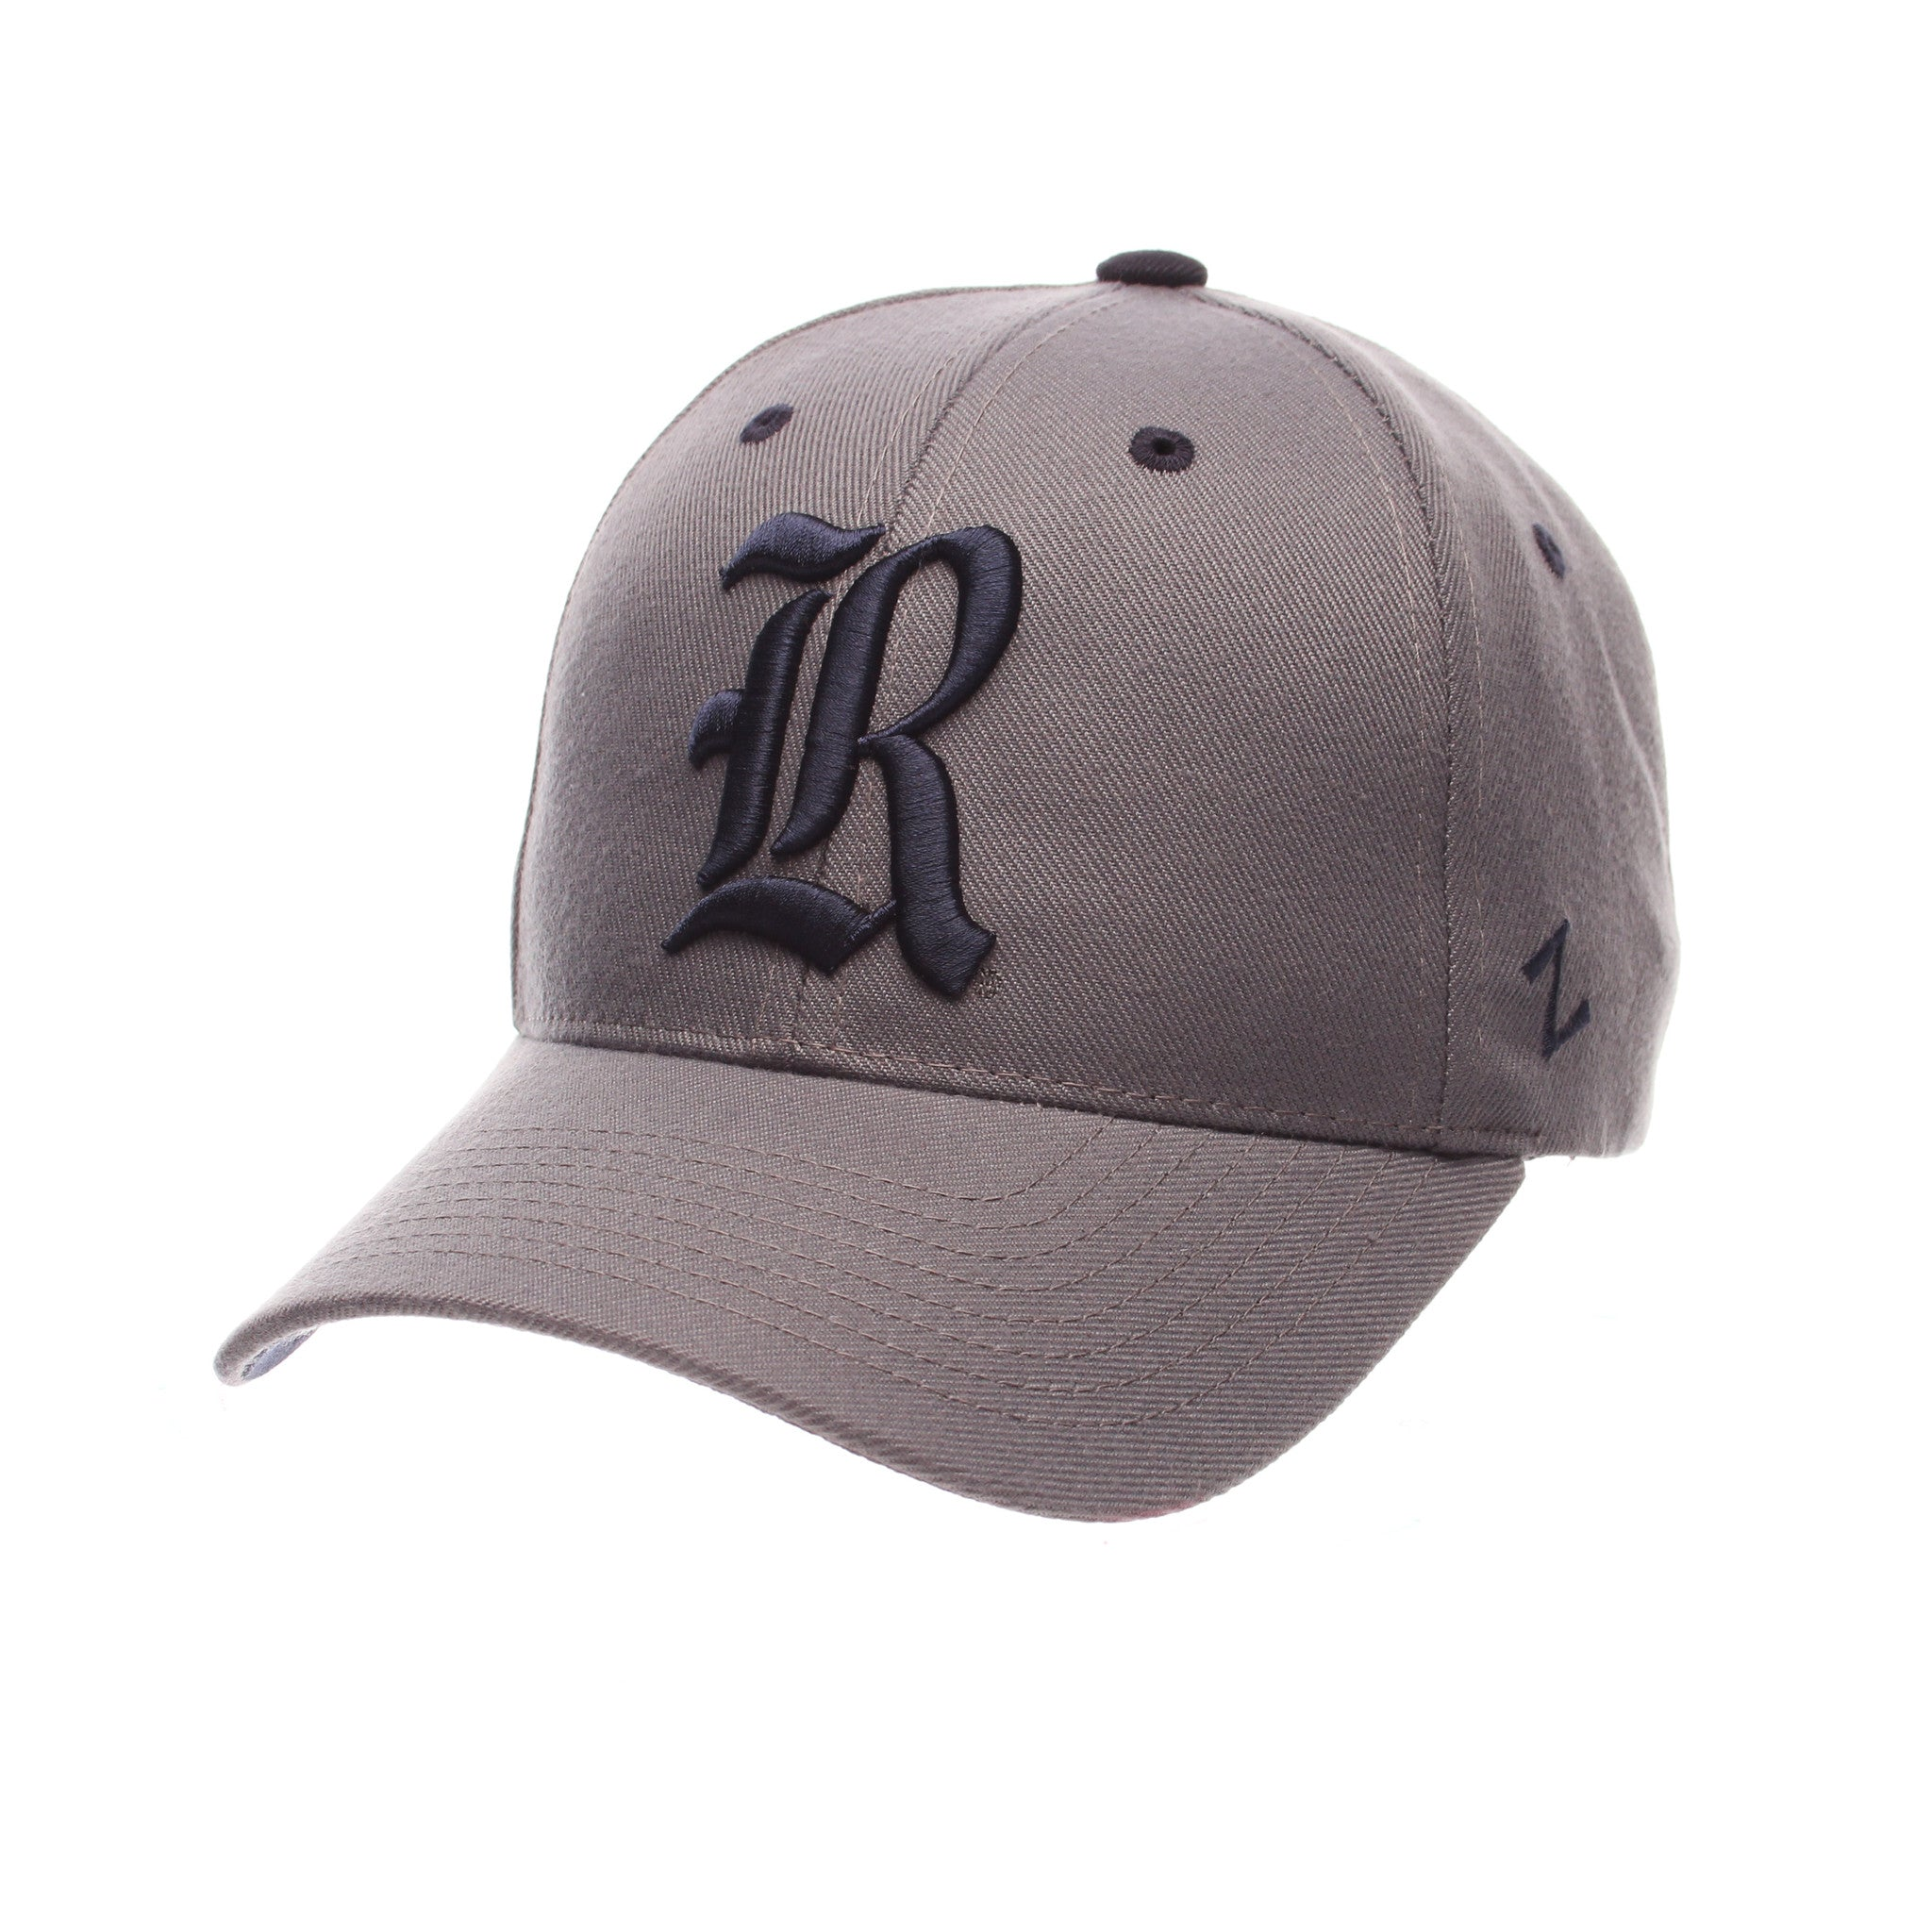 Rice University Competitor Standard (Low) (R) Gray Medium Zwool Adjustable hats by Zephyr